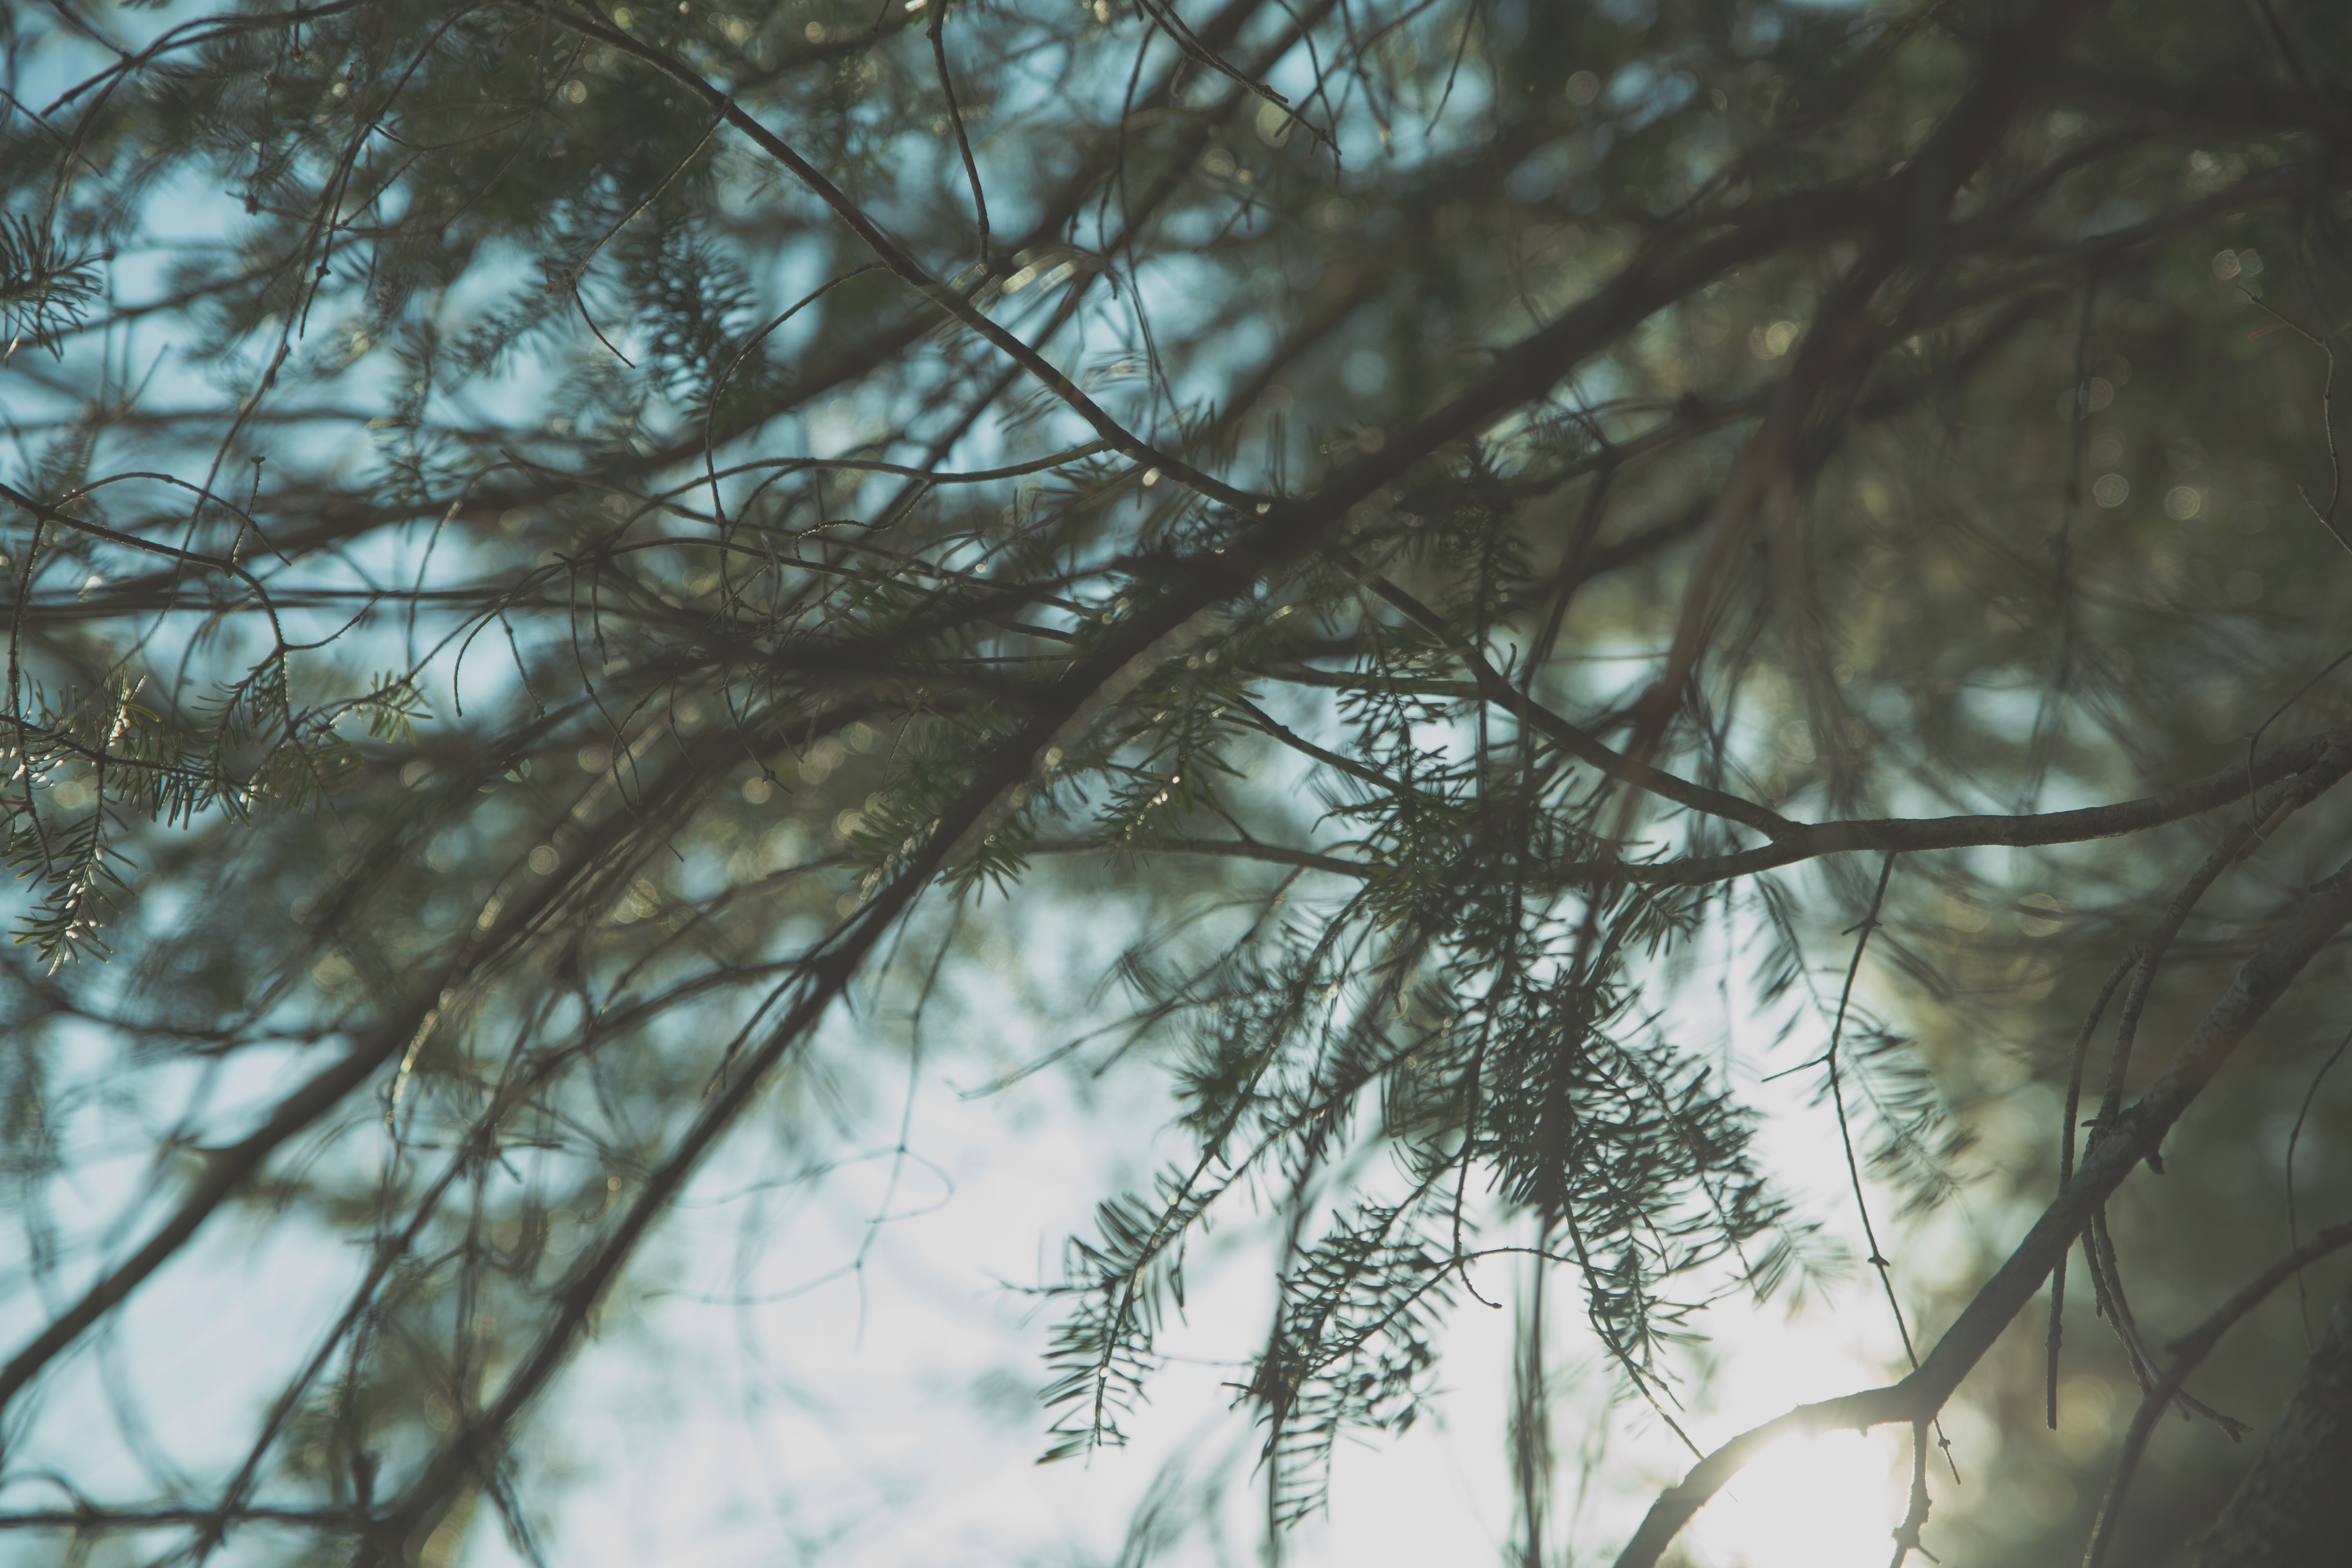 Tree branches covered with green needles against a blurry background